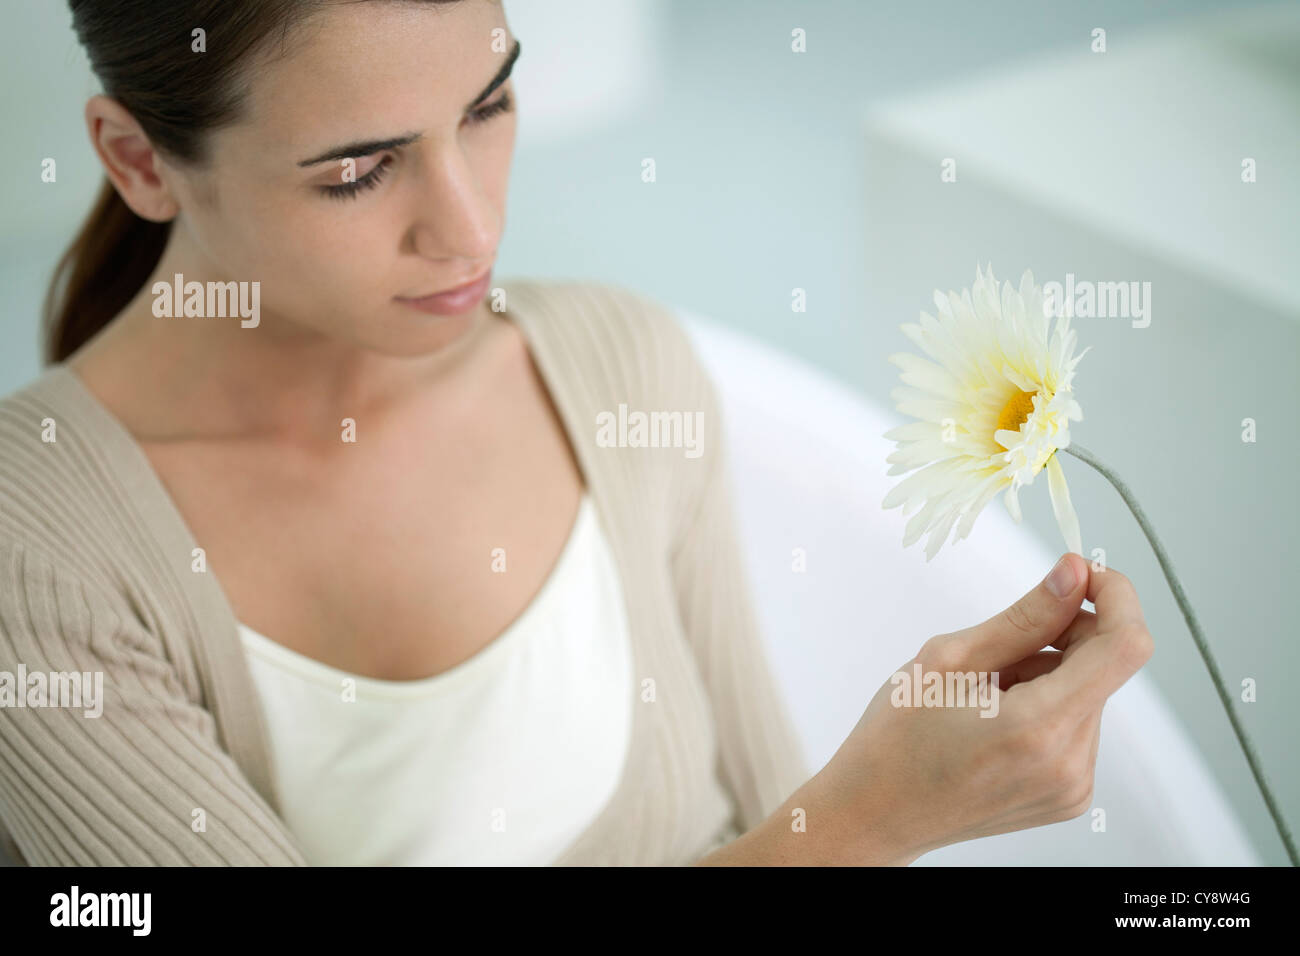 Young woman plucking petals from gerbera daisy - Stock Image